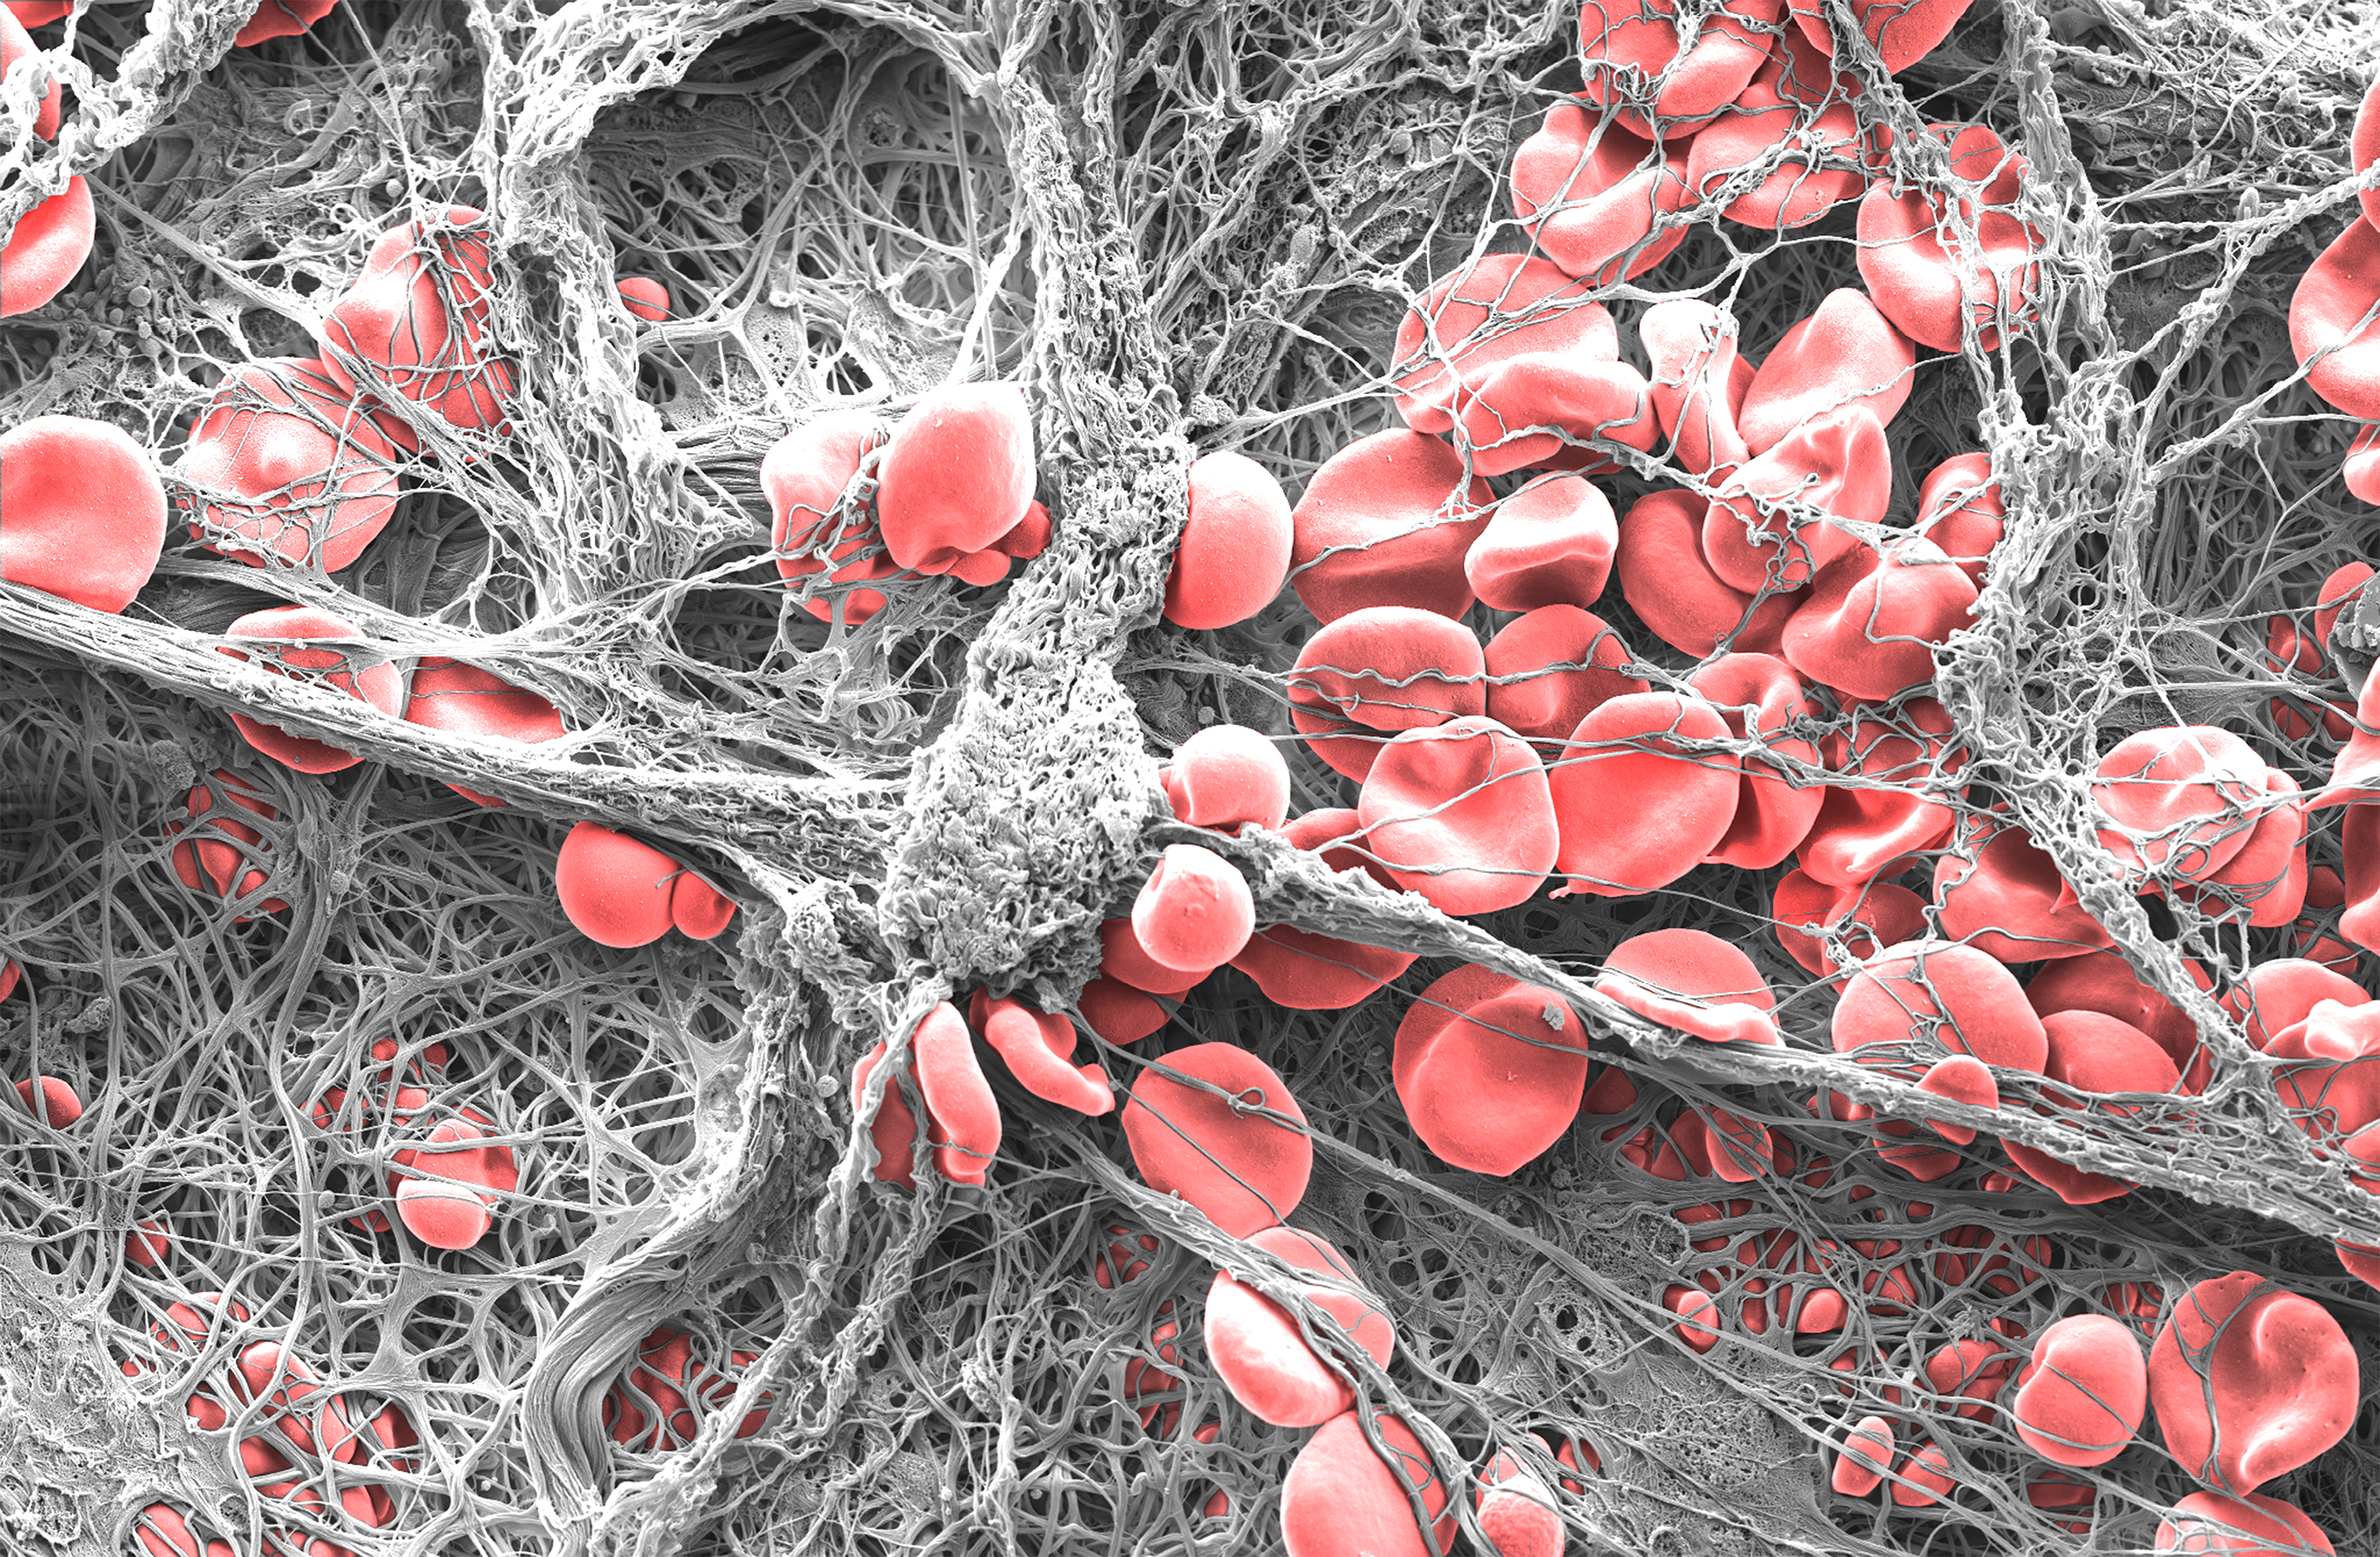 """Clotted"" by Dr Eli Moore - 1st prize winner of UniSA's Images of Research Photography Competition"